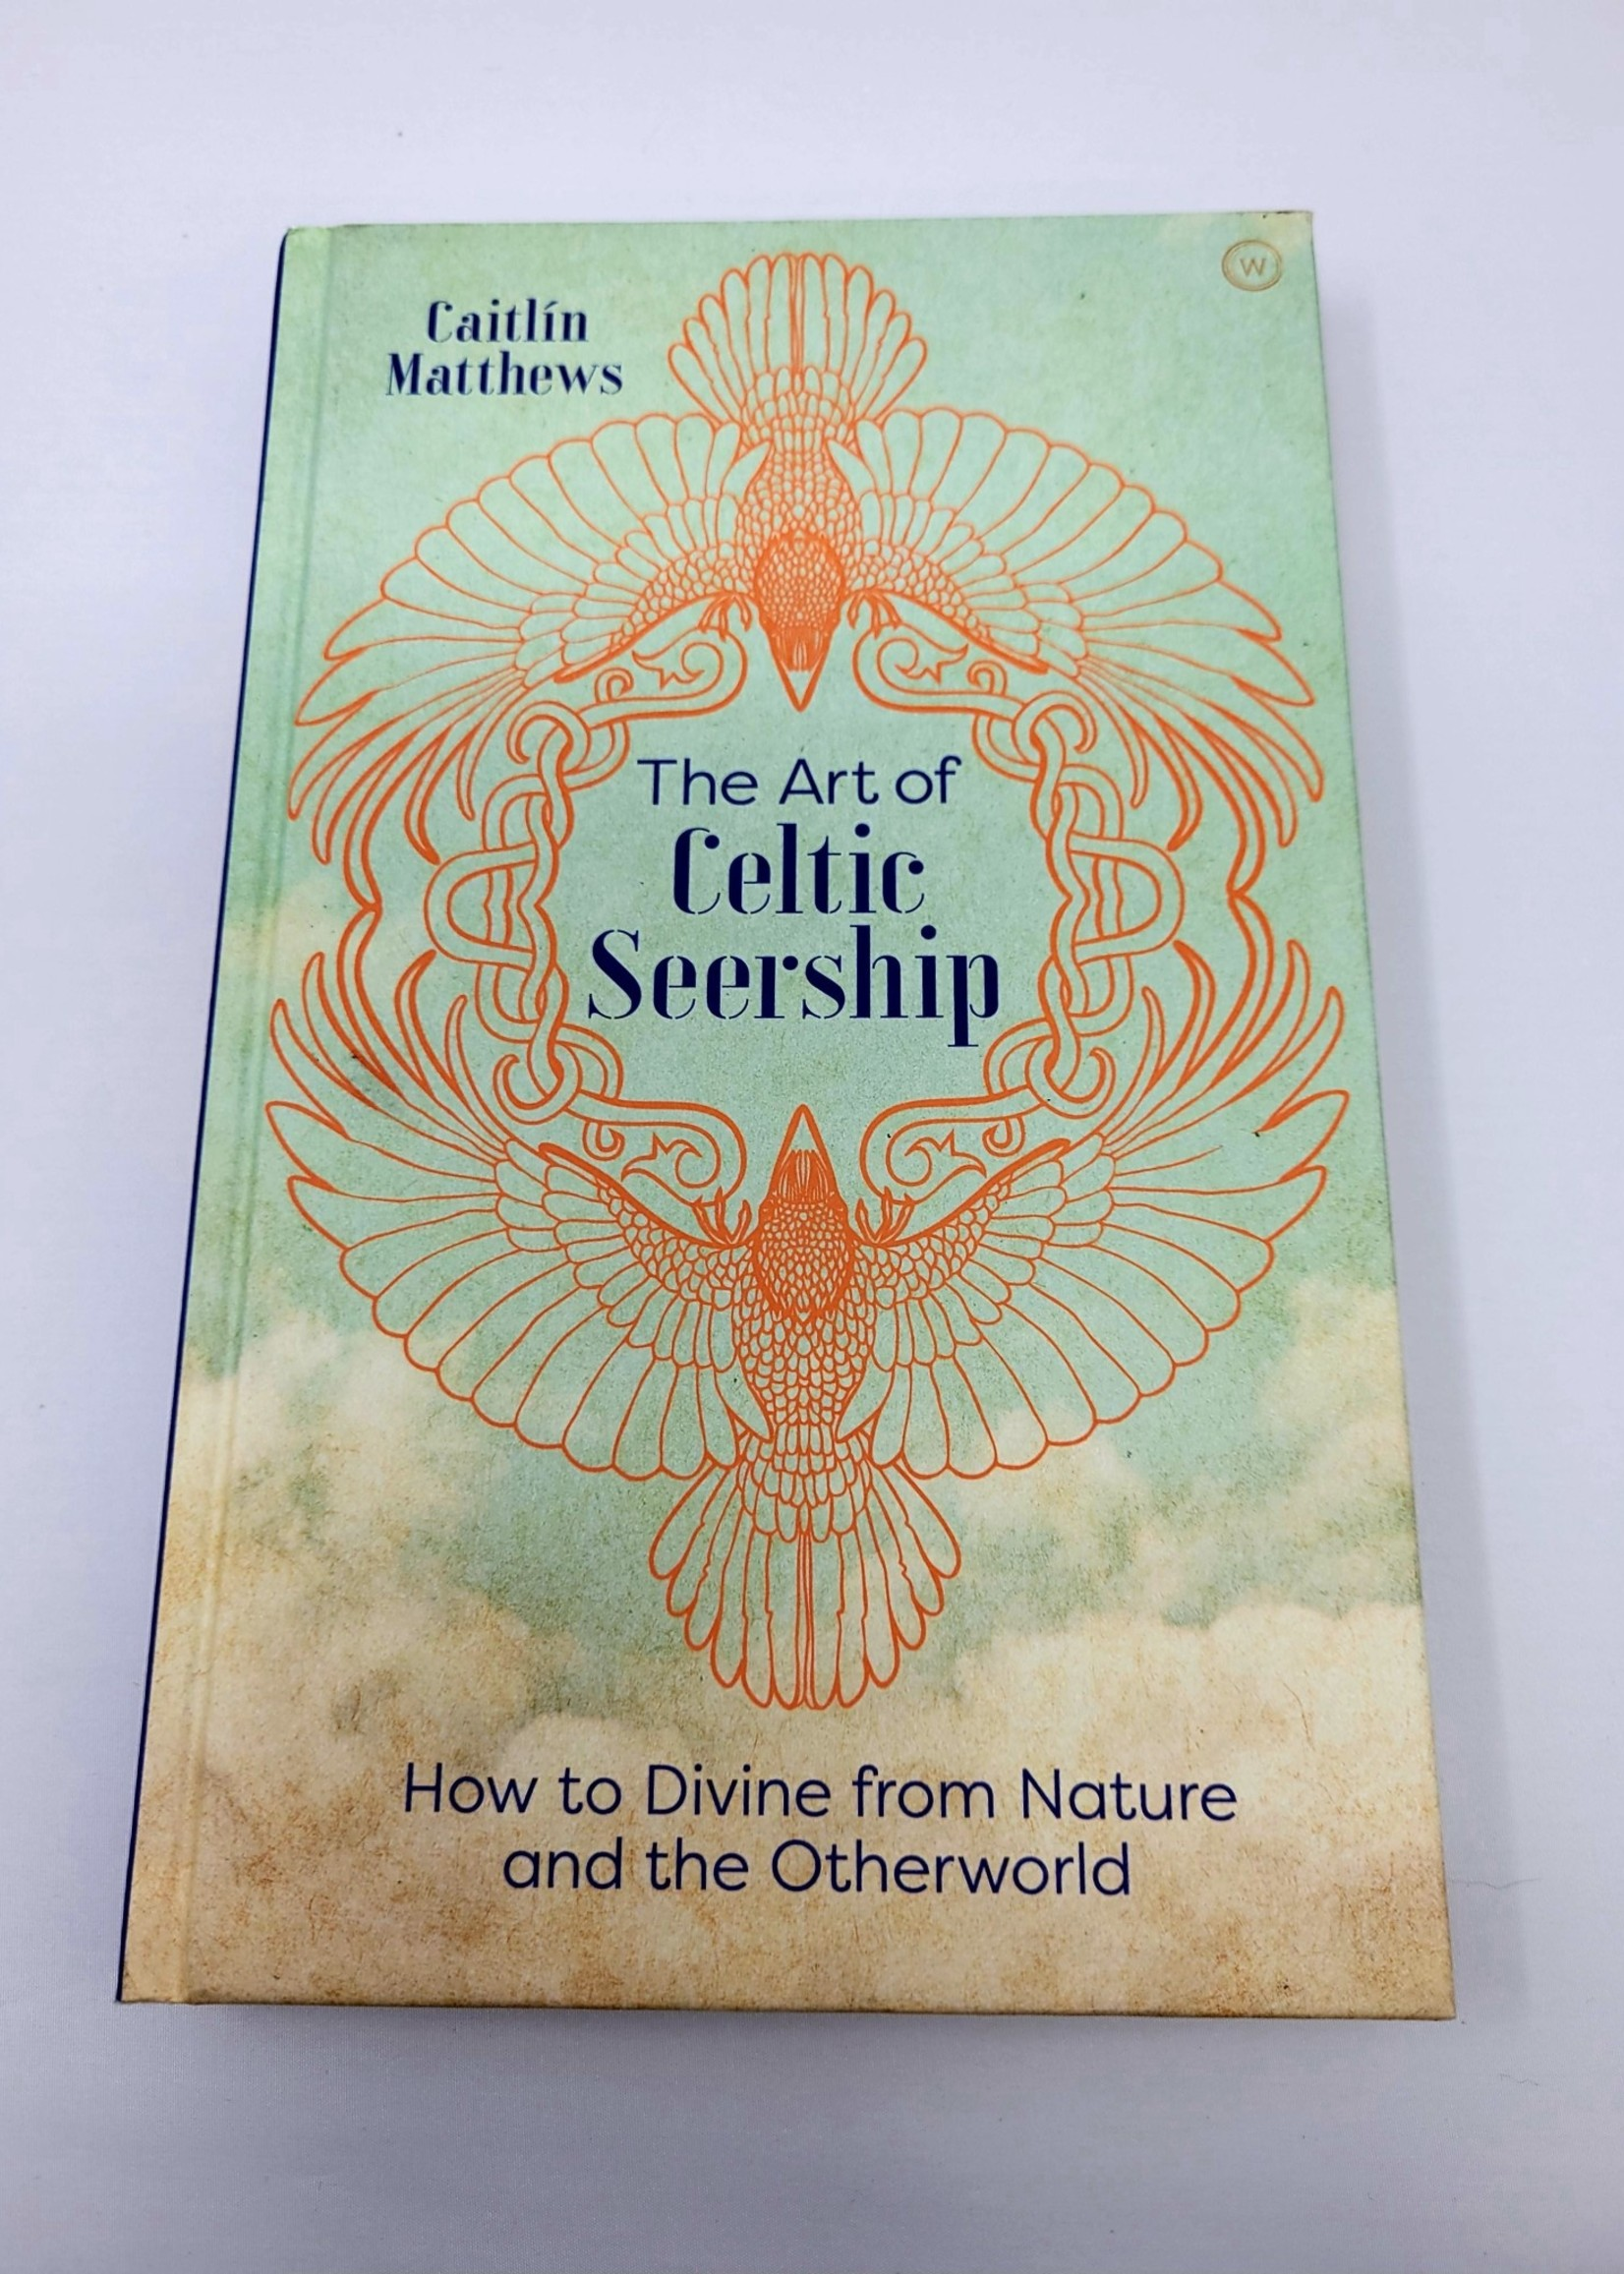 The Art of Celtic Seership HOW TO DIVINE FROM NATURE AND THE OTHERWORLD By CAITLÍN MATTHEWS